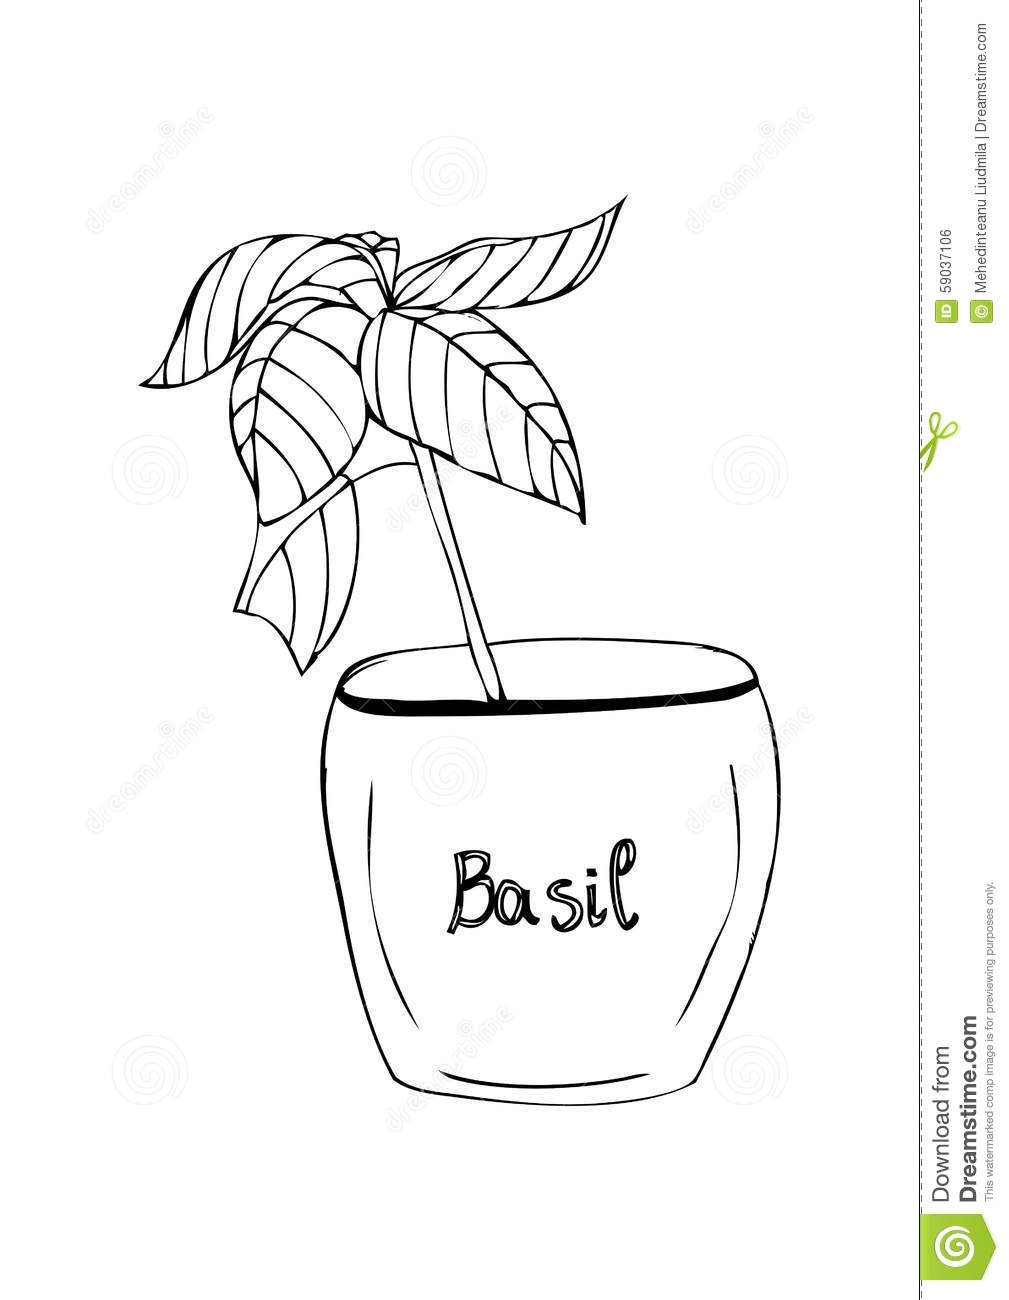 Basilico in vaso su fondo bianco illustrazione di stock for Basilico in vaso